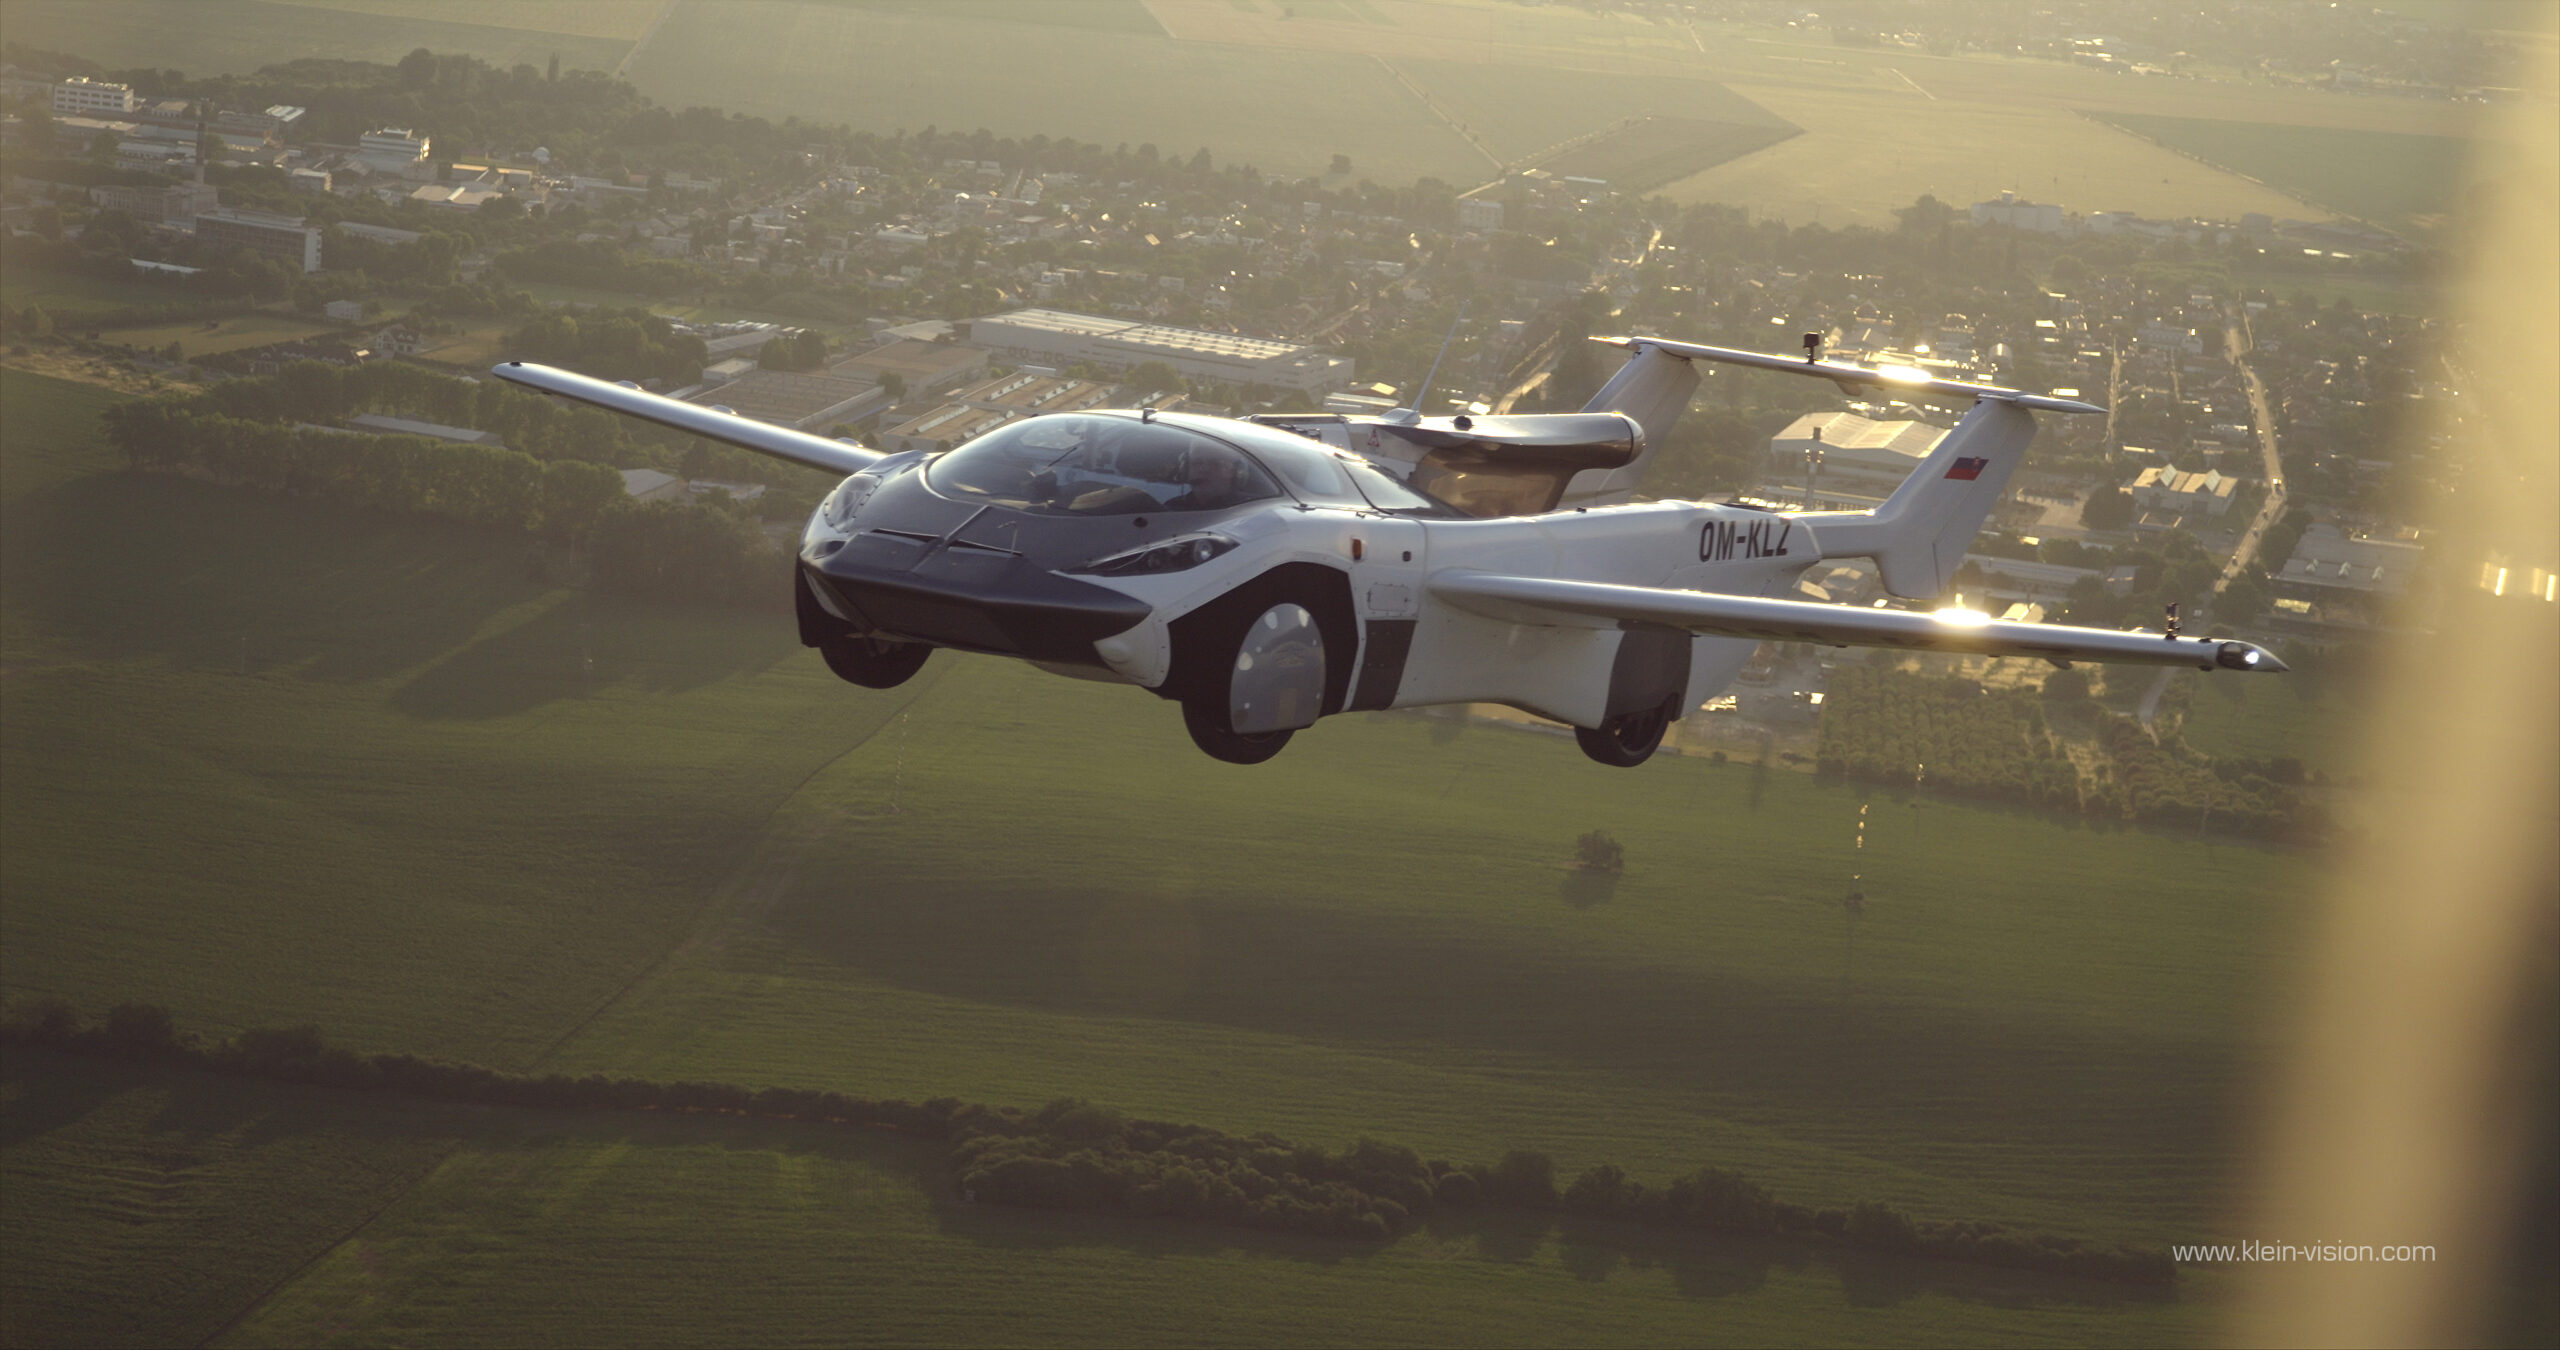 Science Future — Flying Car Completes Its First Flight Between Cities